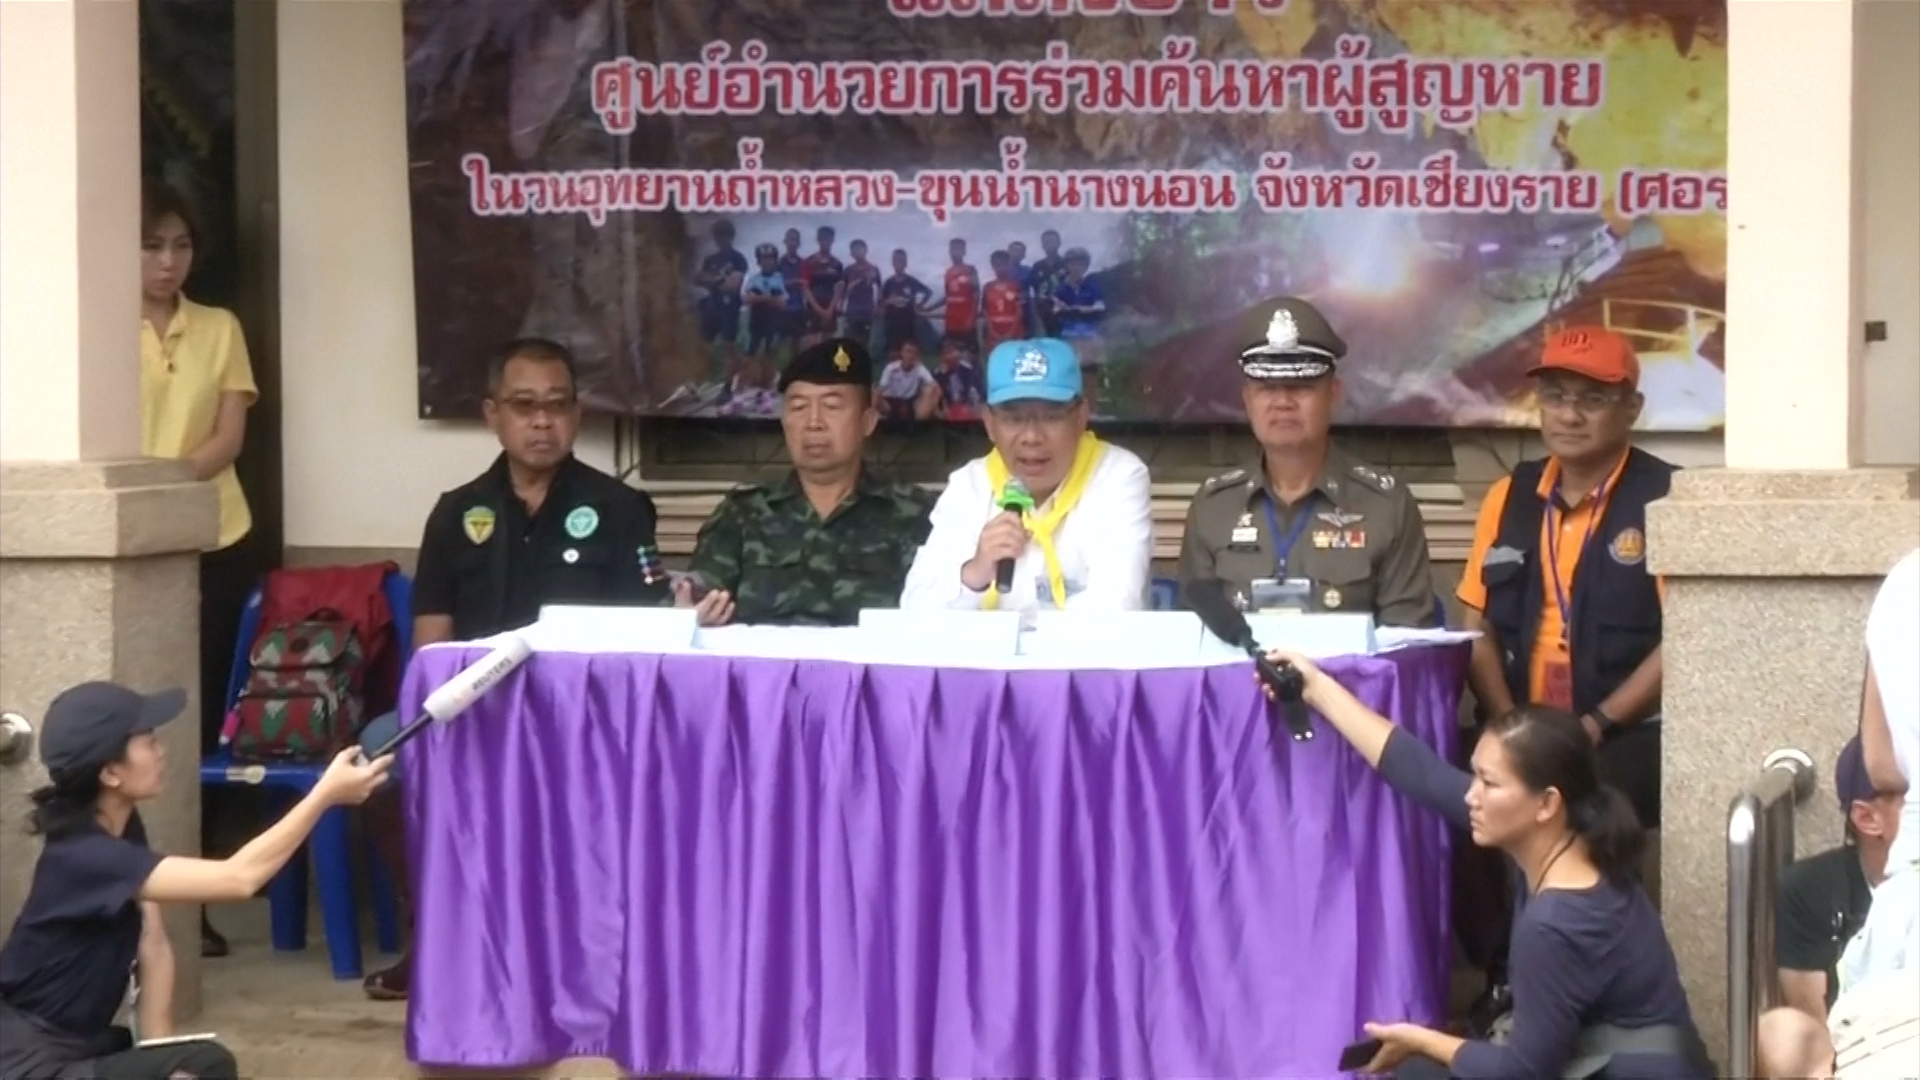 Four more boys rescued from Thai caves